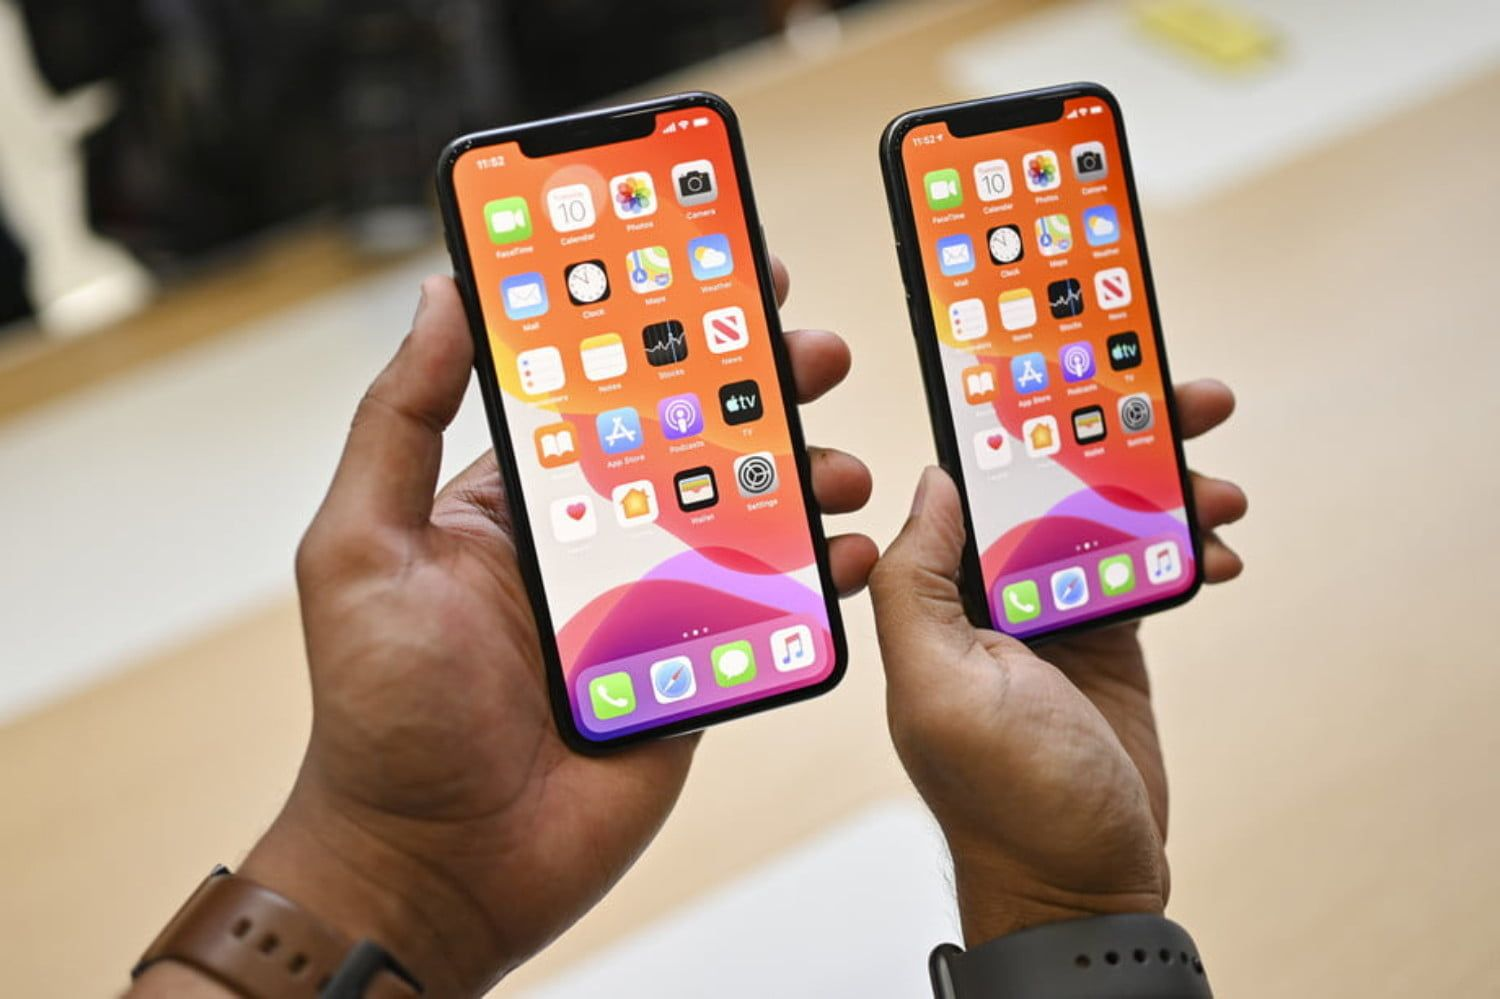 News Apple Deals Best Black Friday Iphone Deals 2019 The Lowest Prices On Apple S Smartphones Iphone Iphone Upgrade Iphone Deals